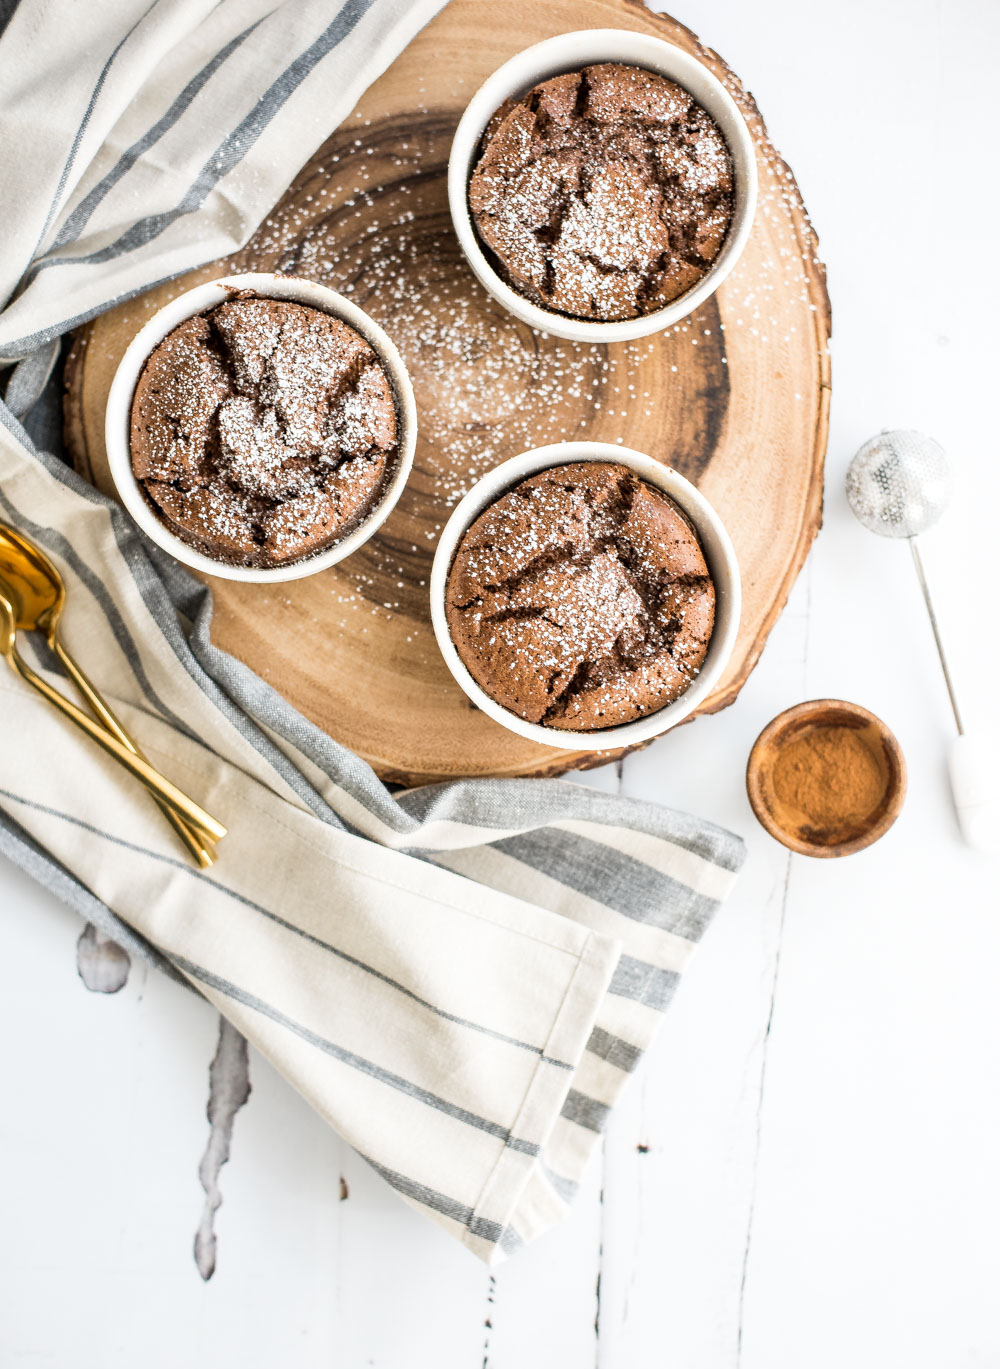 Easy cinnamon chocolate soufflés are nothing to be scared of. Soufflés are actually very simple once you get the technique down, so give this recipe a try!